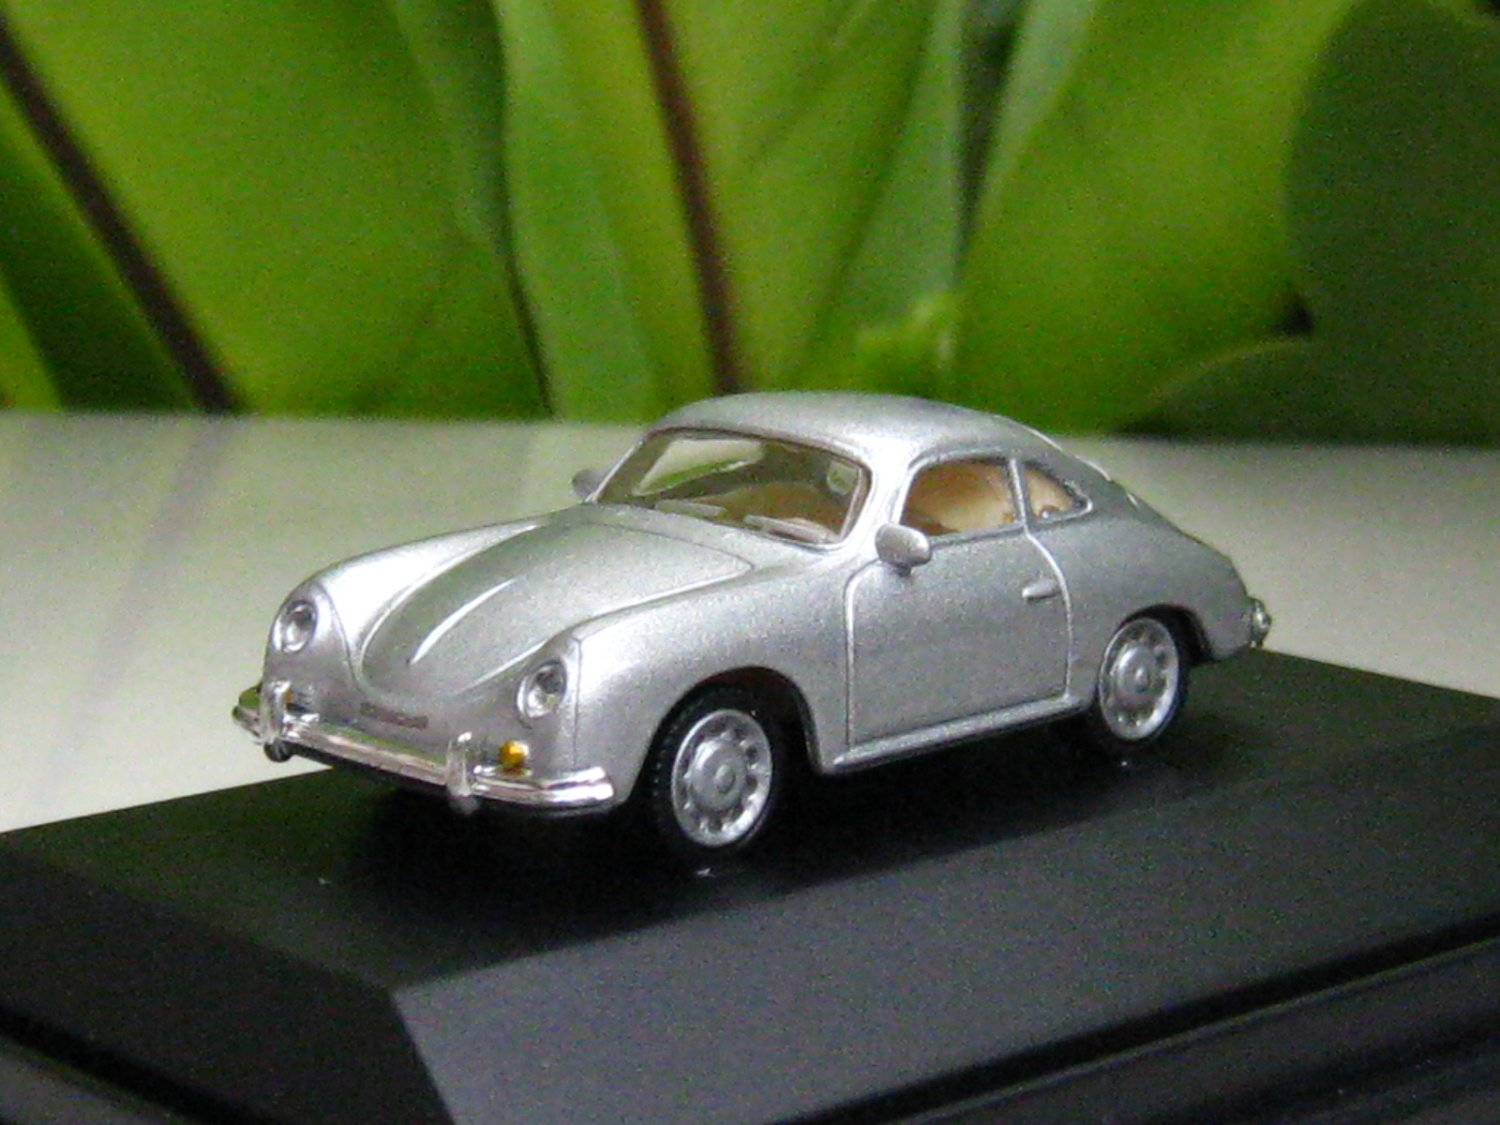 High Speed 1/87 Diecast Model Car Porsche 356A SILVER 1959 Classic Car